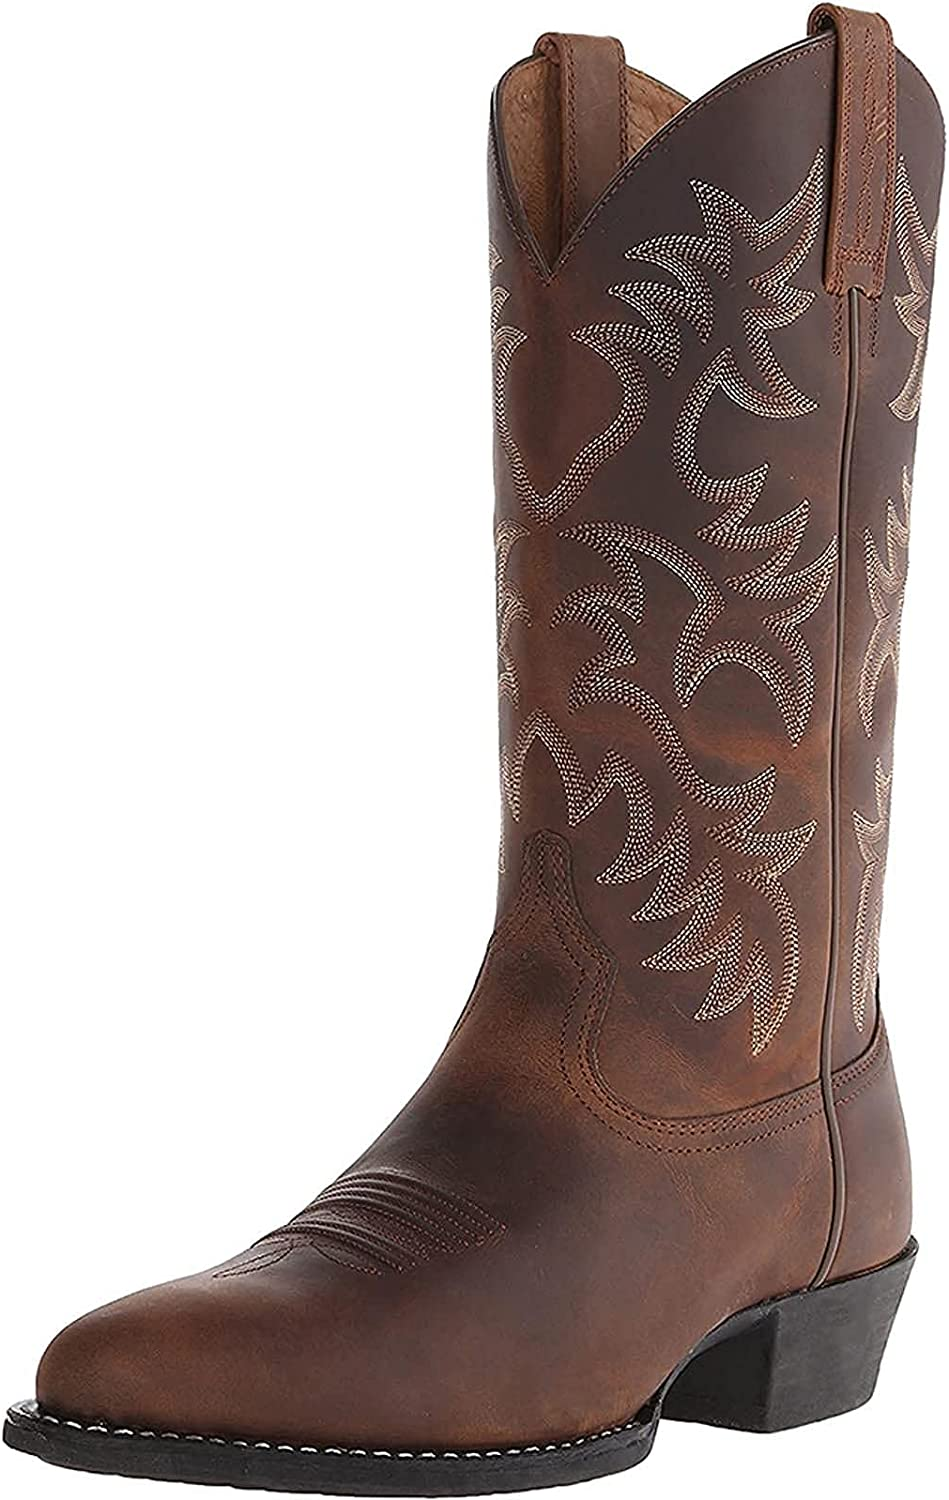 Men's Fashion Mid Calf Western Cowboy Boot Modern Distressed Boot Embroidered PU Leather Cowboy Ankle Boots